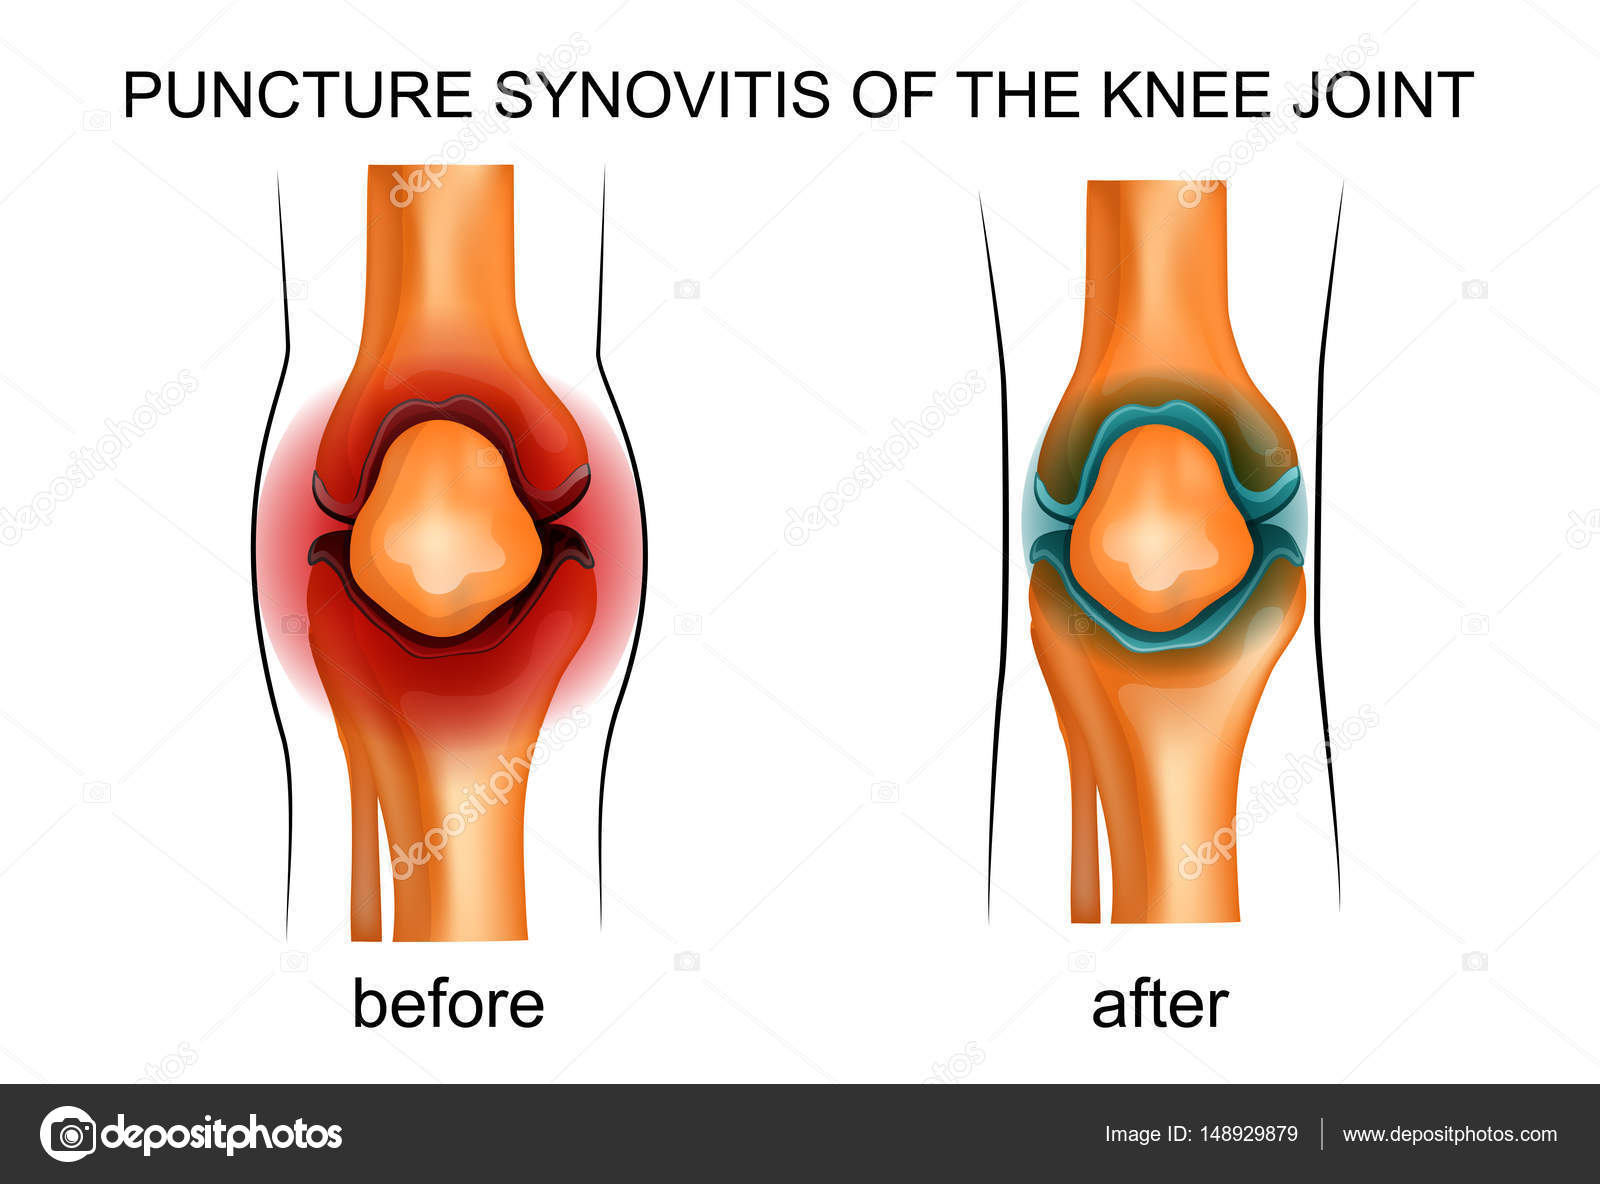 Puncture synovitis of the knee joint stock vector artemida psy puncture synovitis of the knee joint stock vector ccuart Choice Image